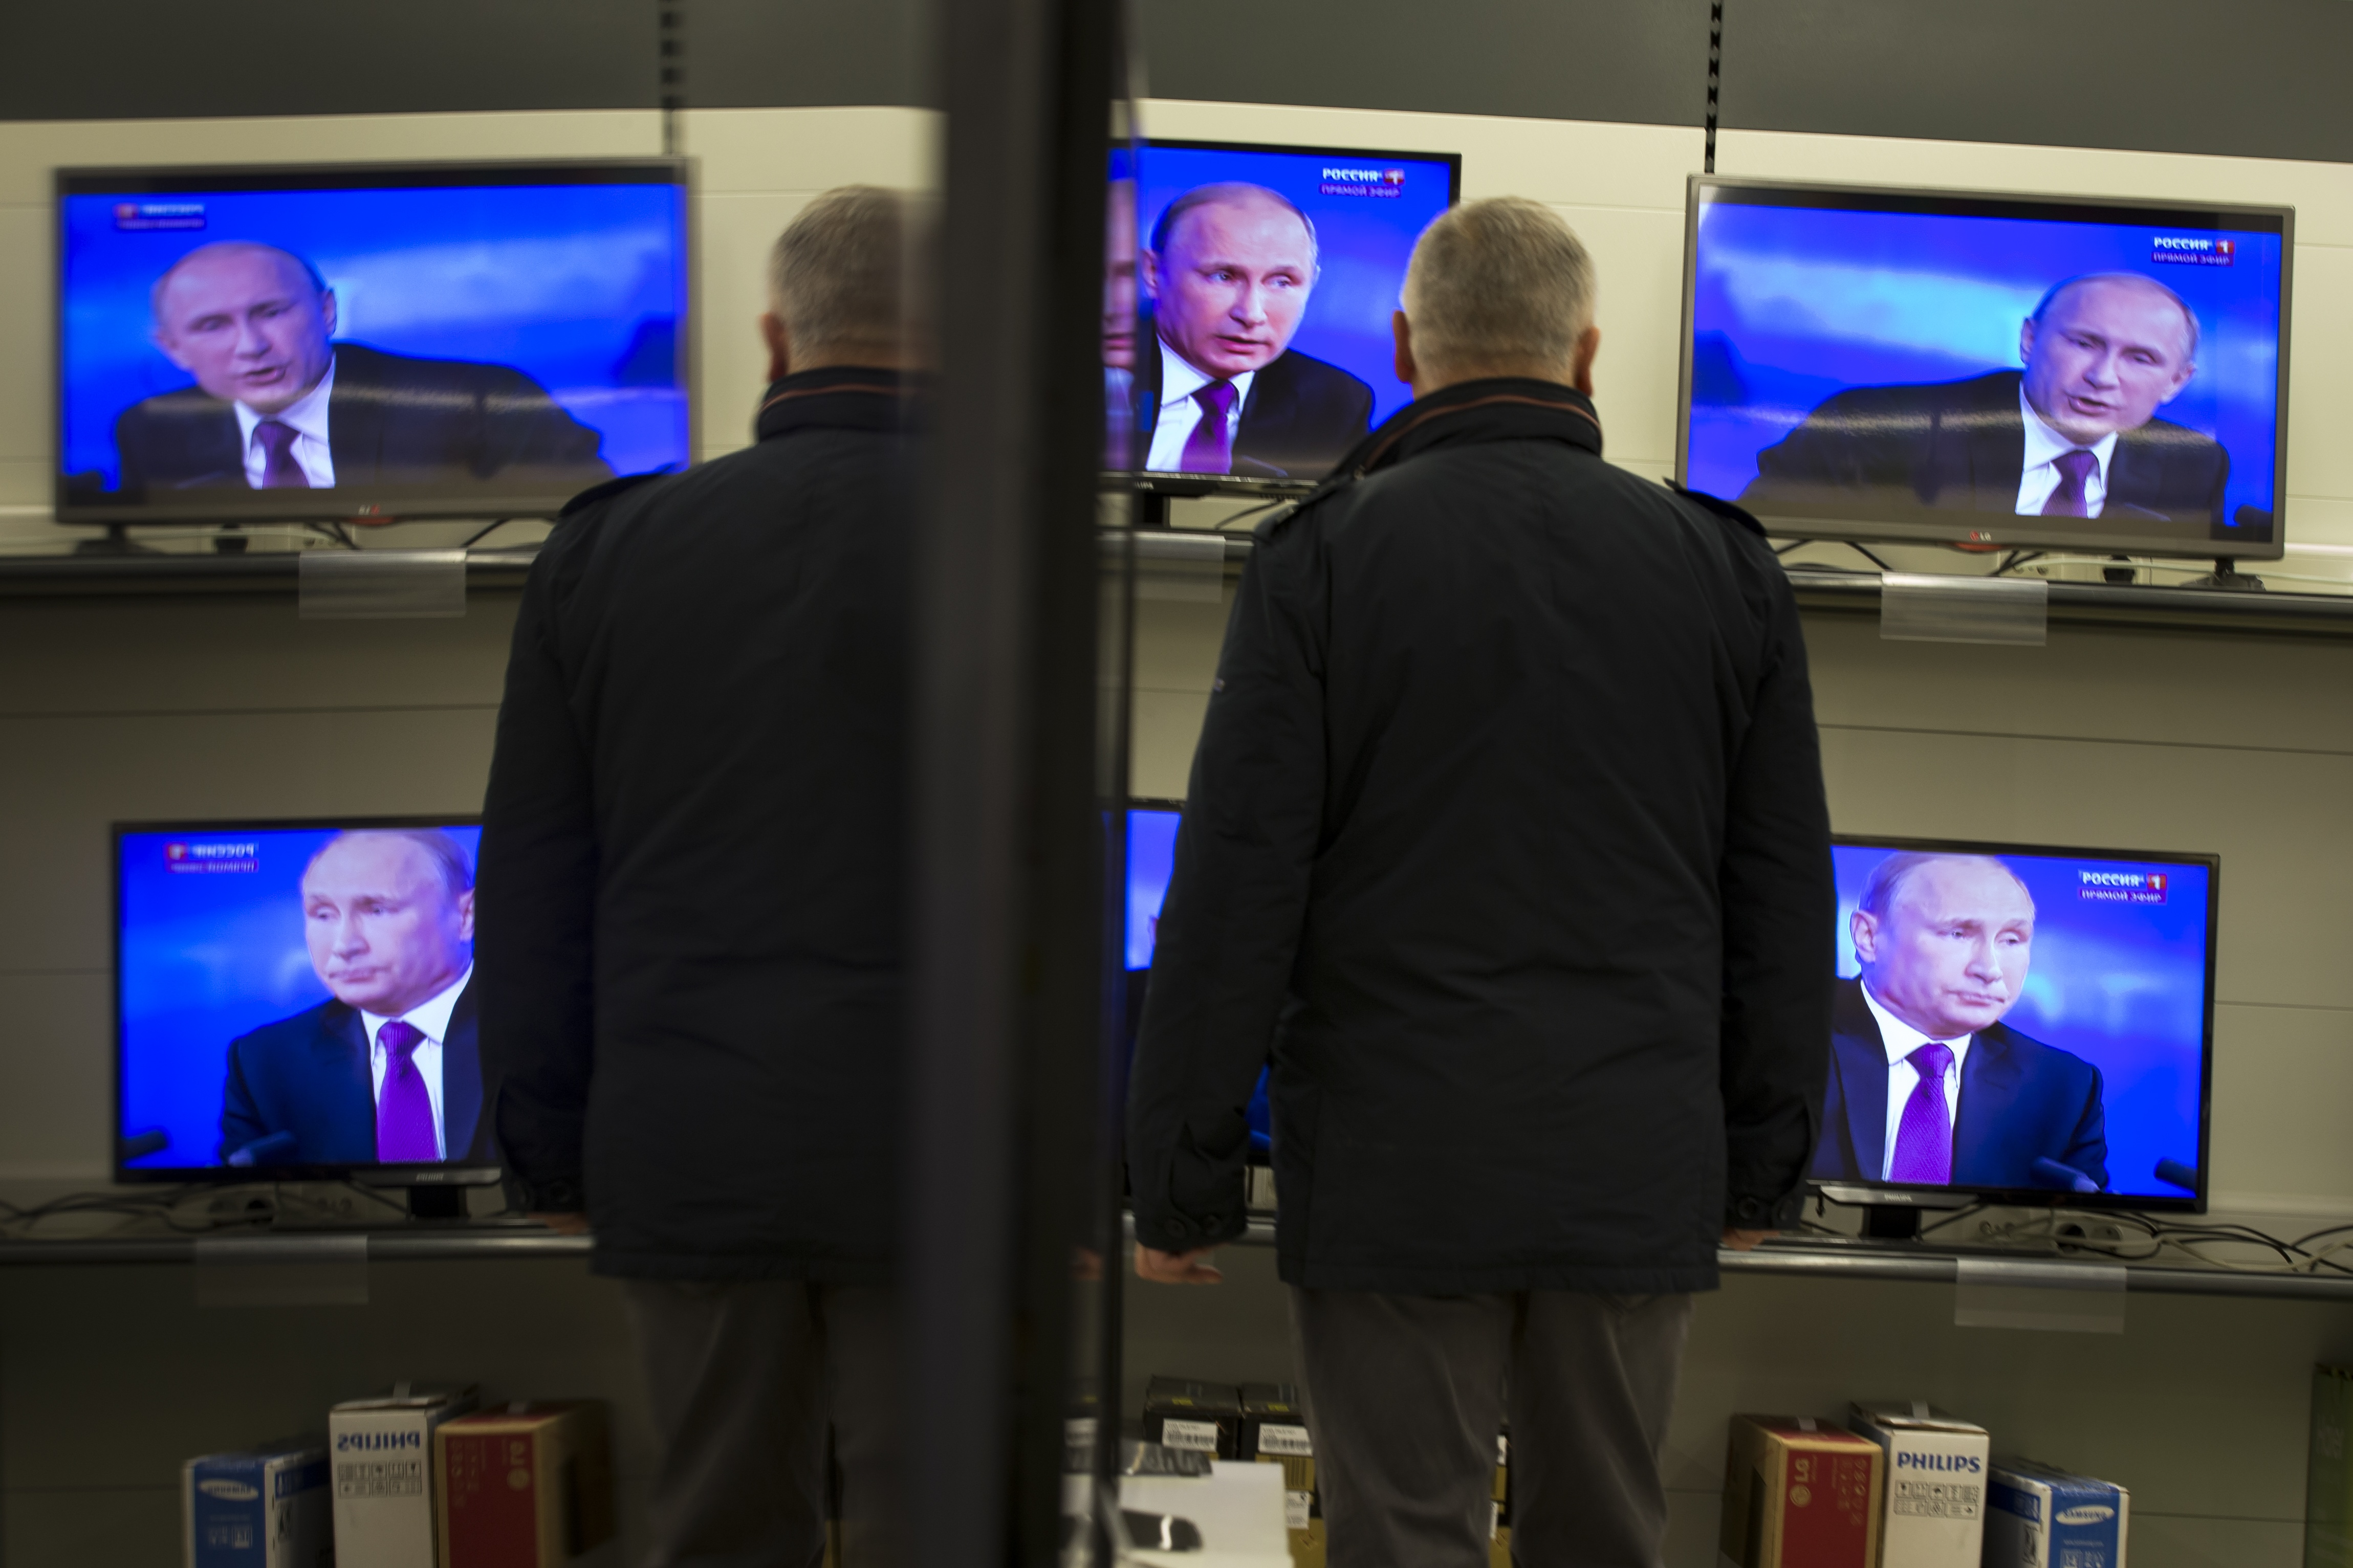 A man watches Russian President Vladimir Putin on TV screens in an electronic hypermarket in Moscow, Russia. (AP Photo/Alexander Zemlianichenko)